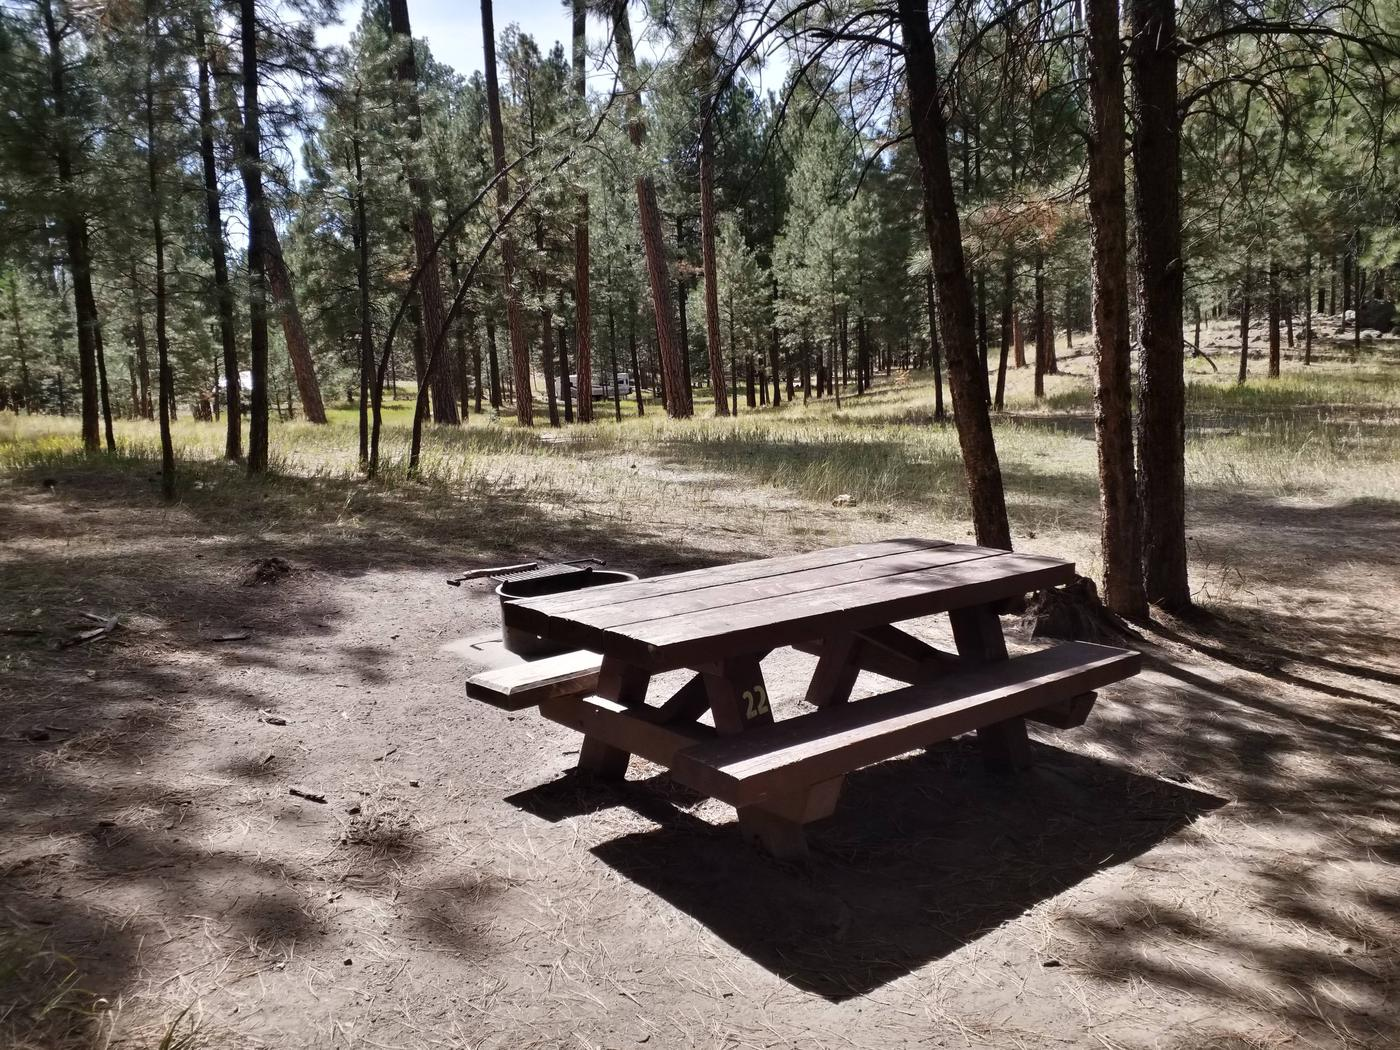 Site 22 sits in the sunlight and provides a picnic table and metal fire ring.Site 22